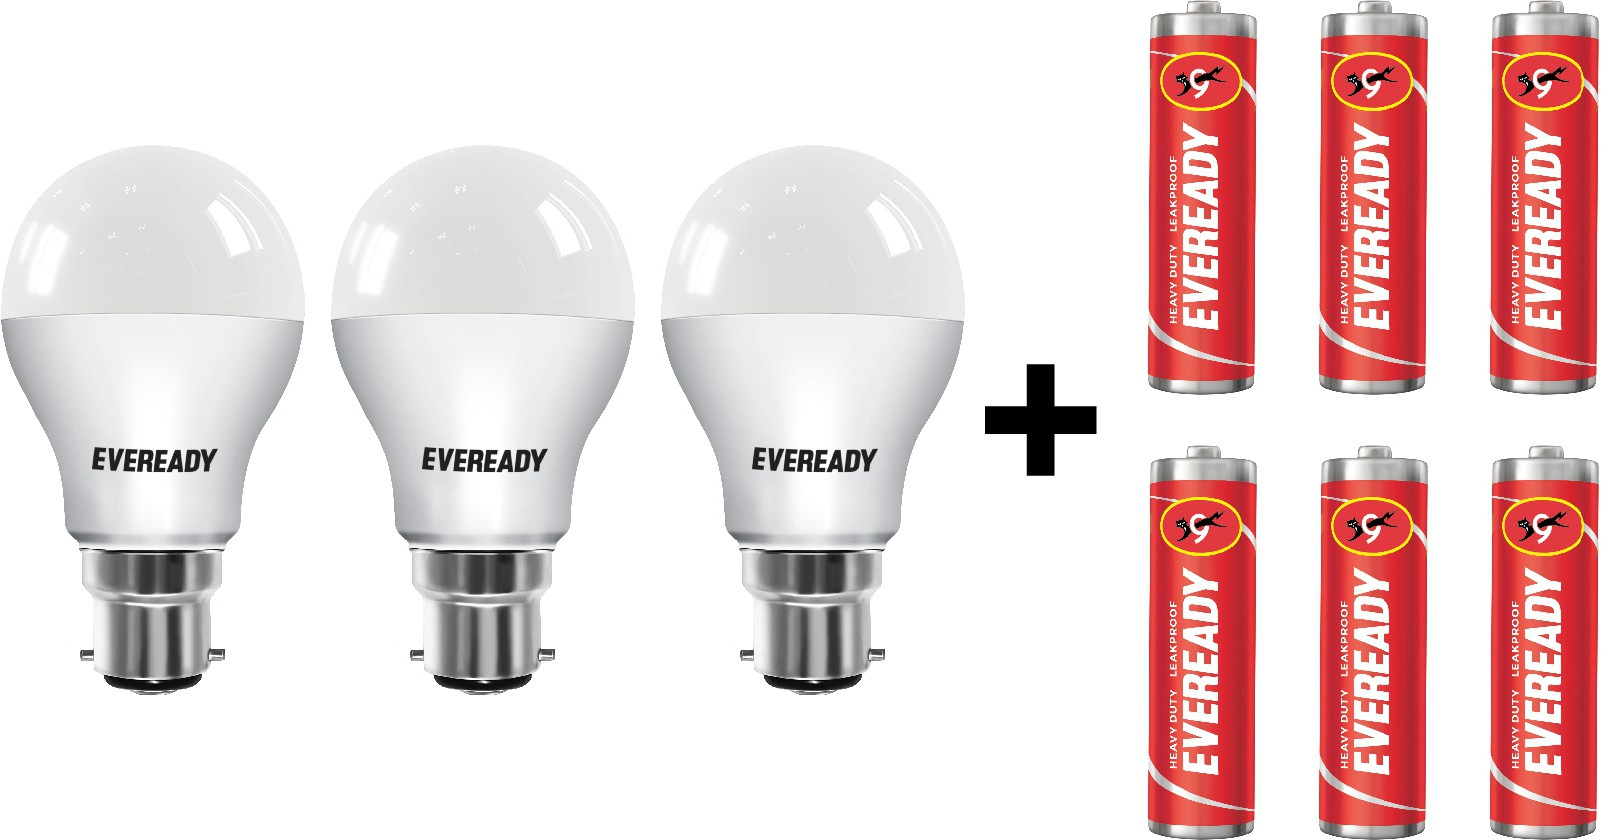 Deals | Branded LED Bulb Eveready, Philips & more